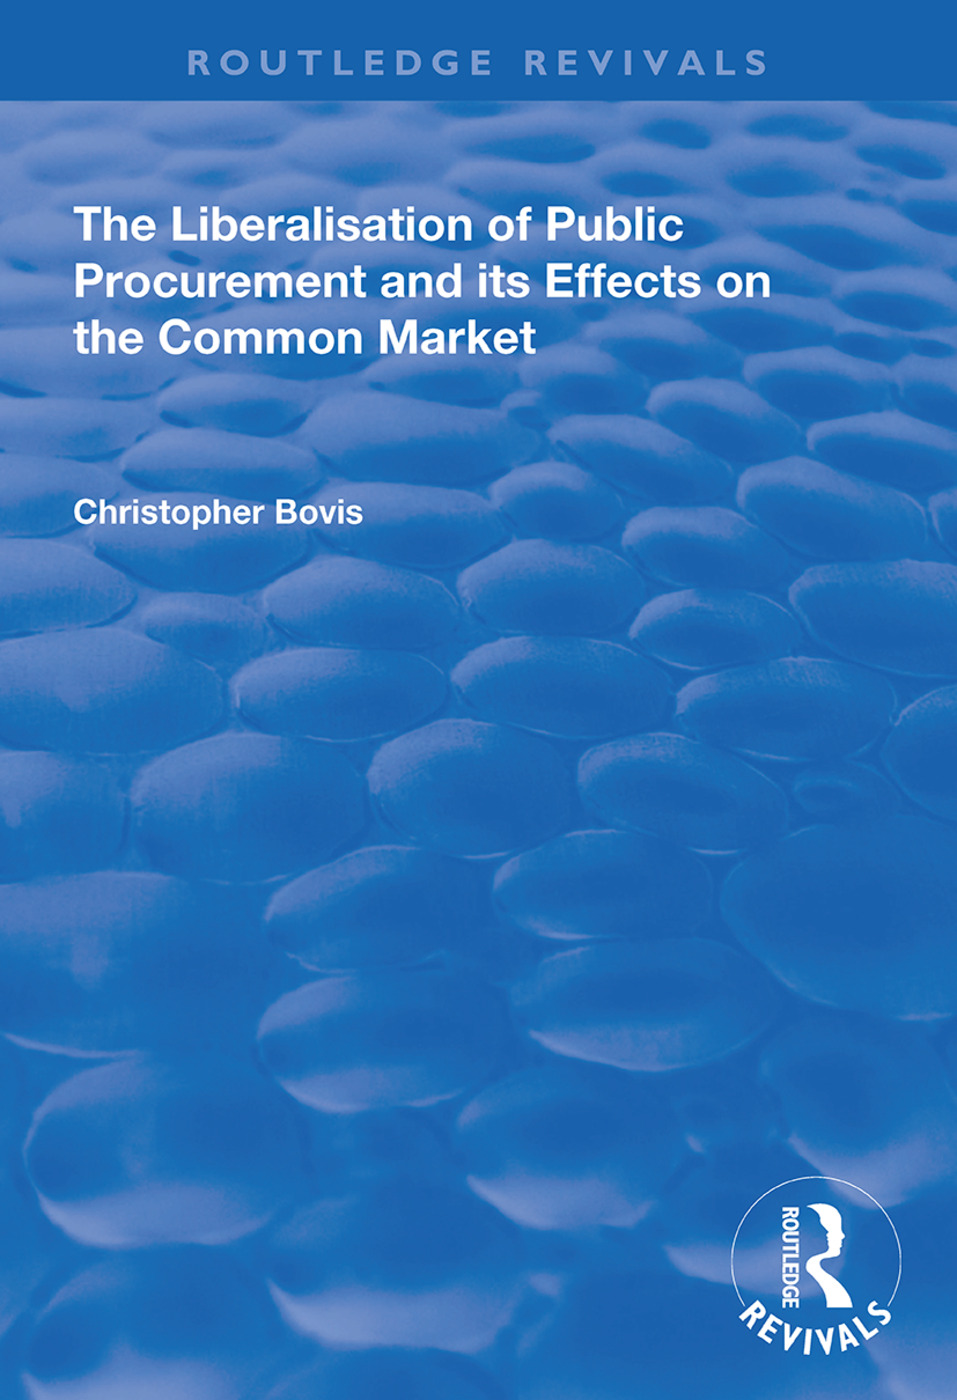 The Liberalisation of Public Procurement and its Effects on the Common Market